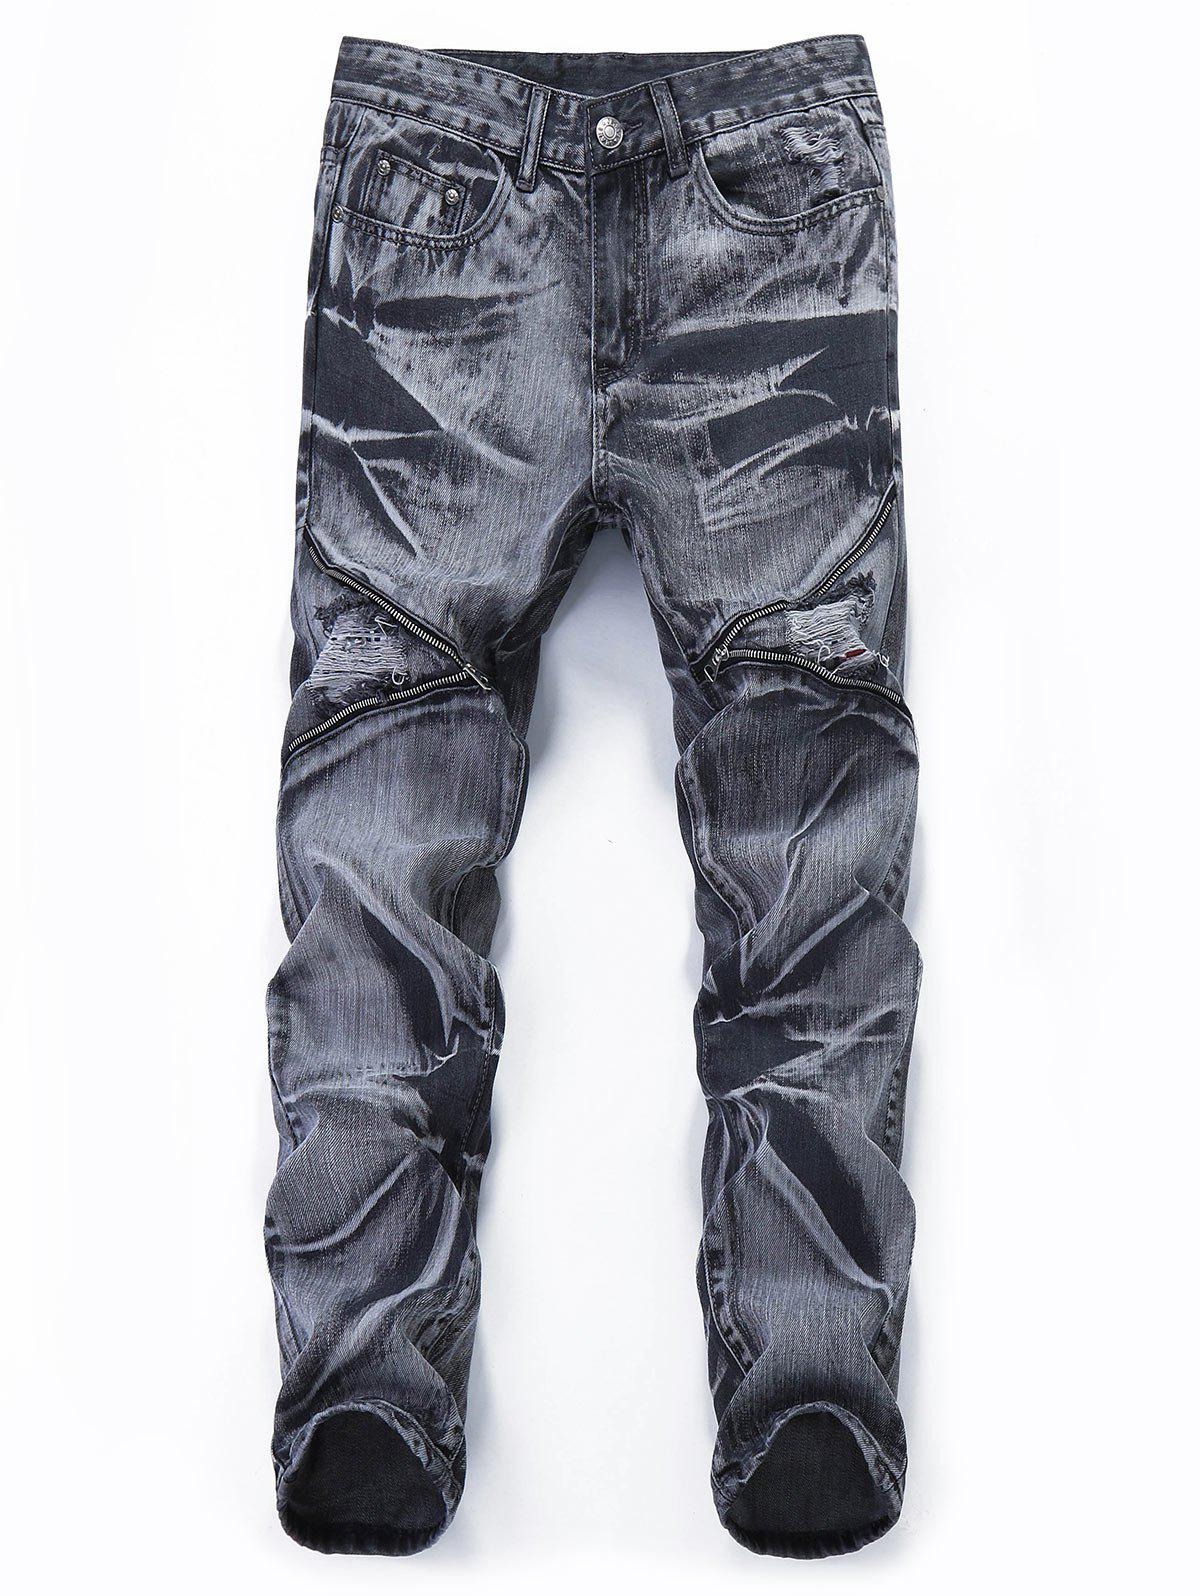 Unique Distressed Zipper Leg Pockets Jeans